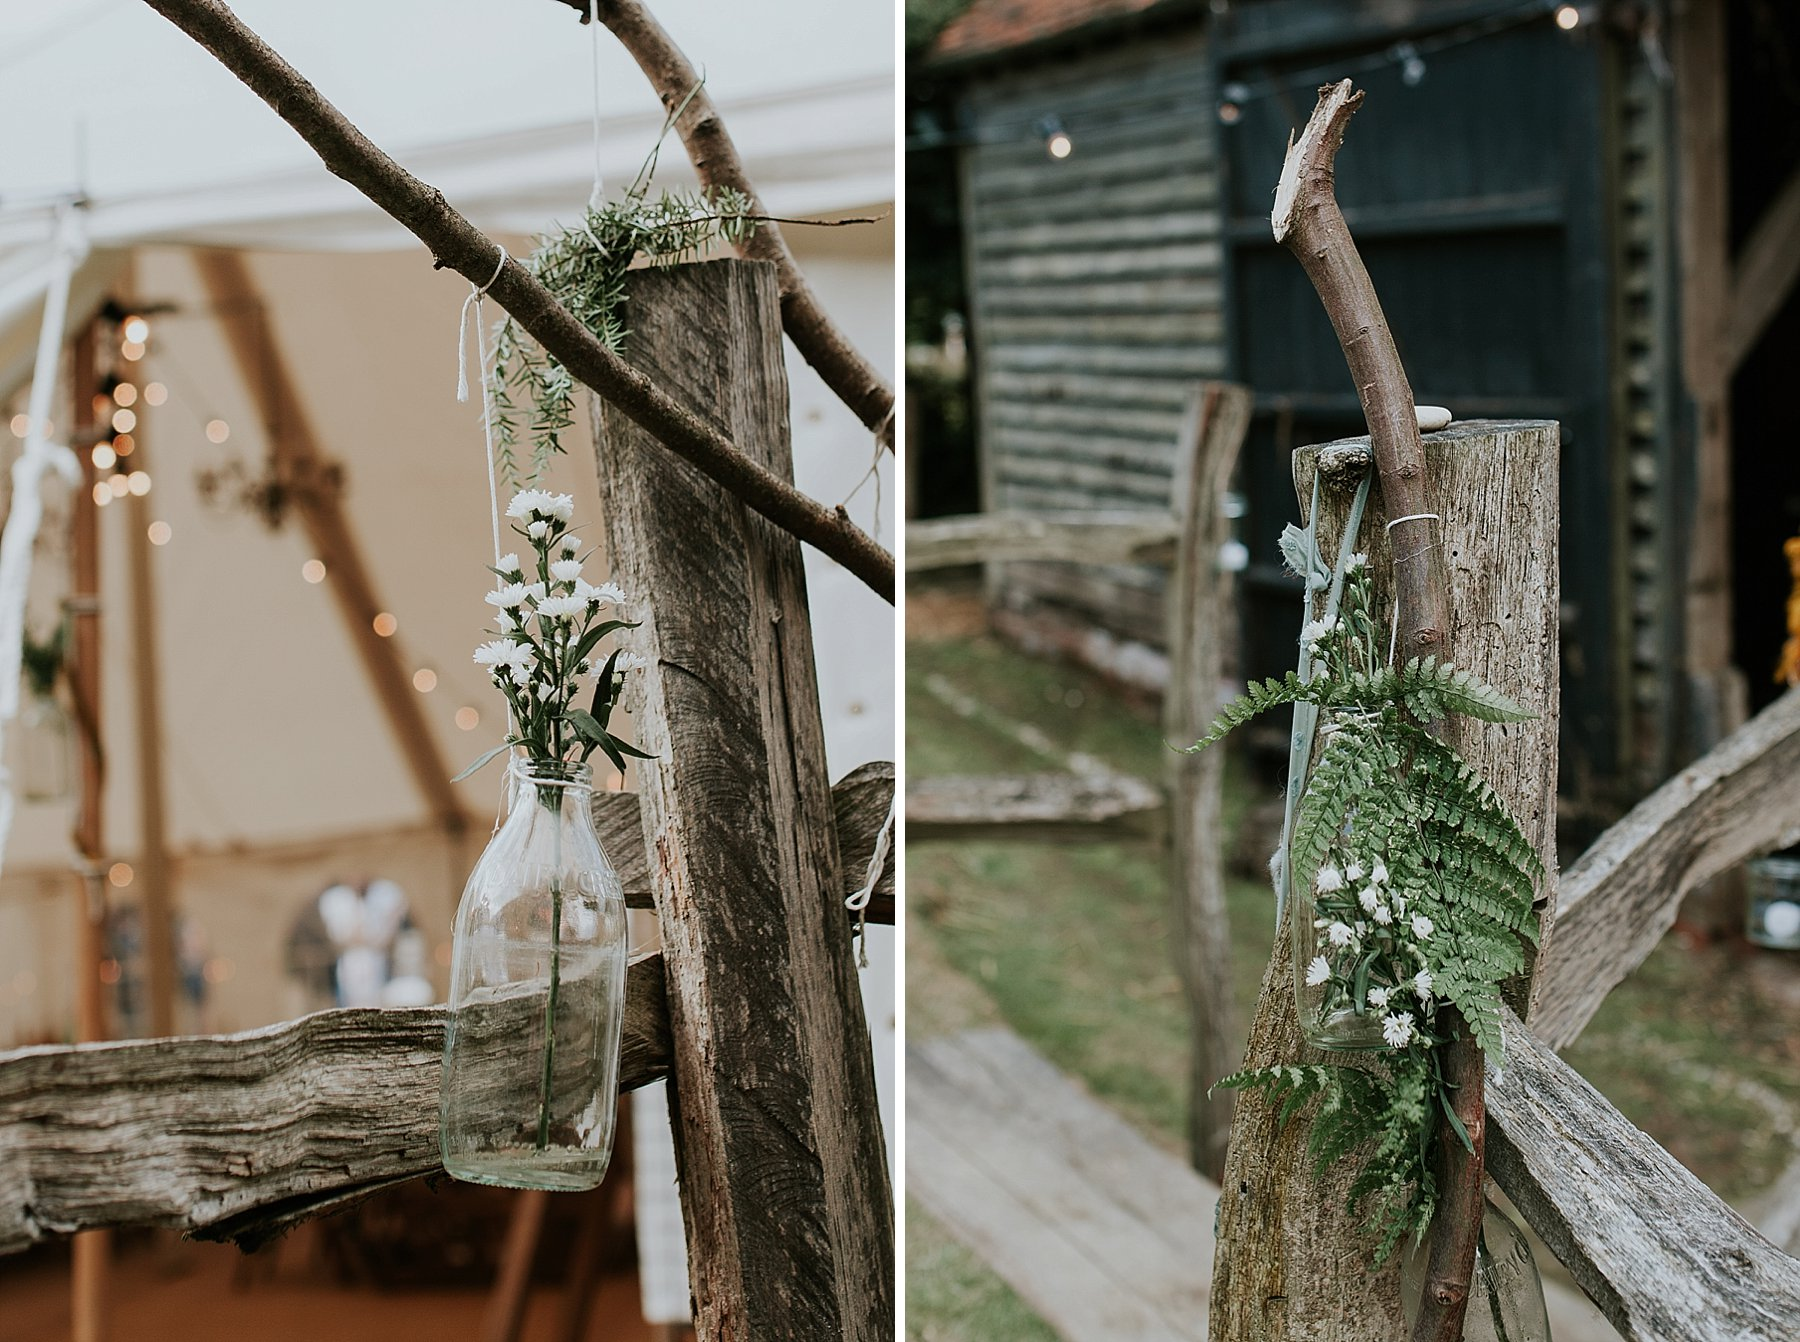 64 festival woodland Wedding fern bottle details.jpg